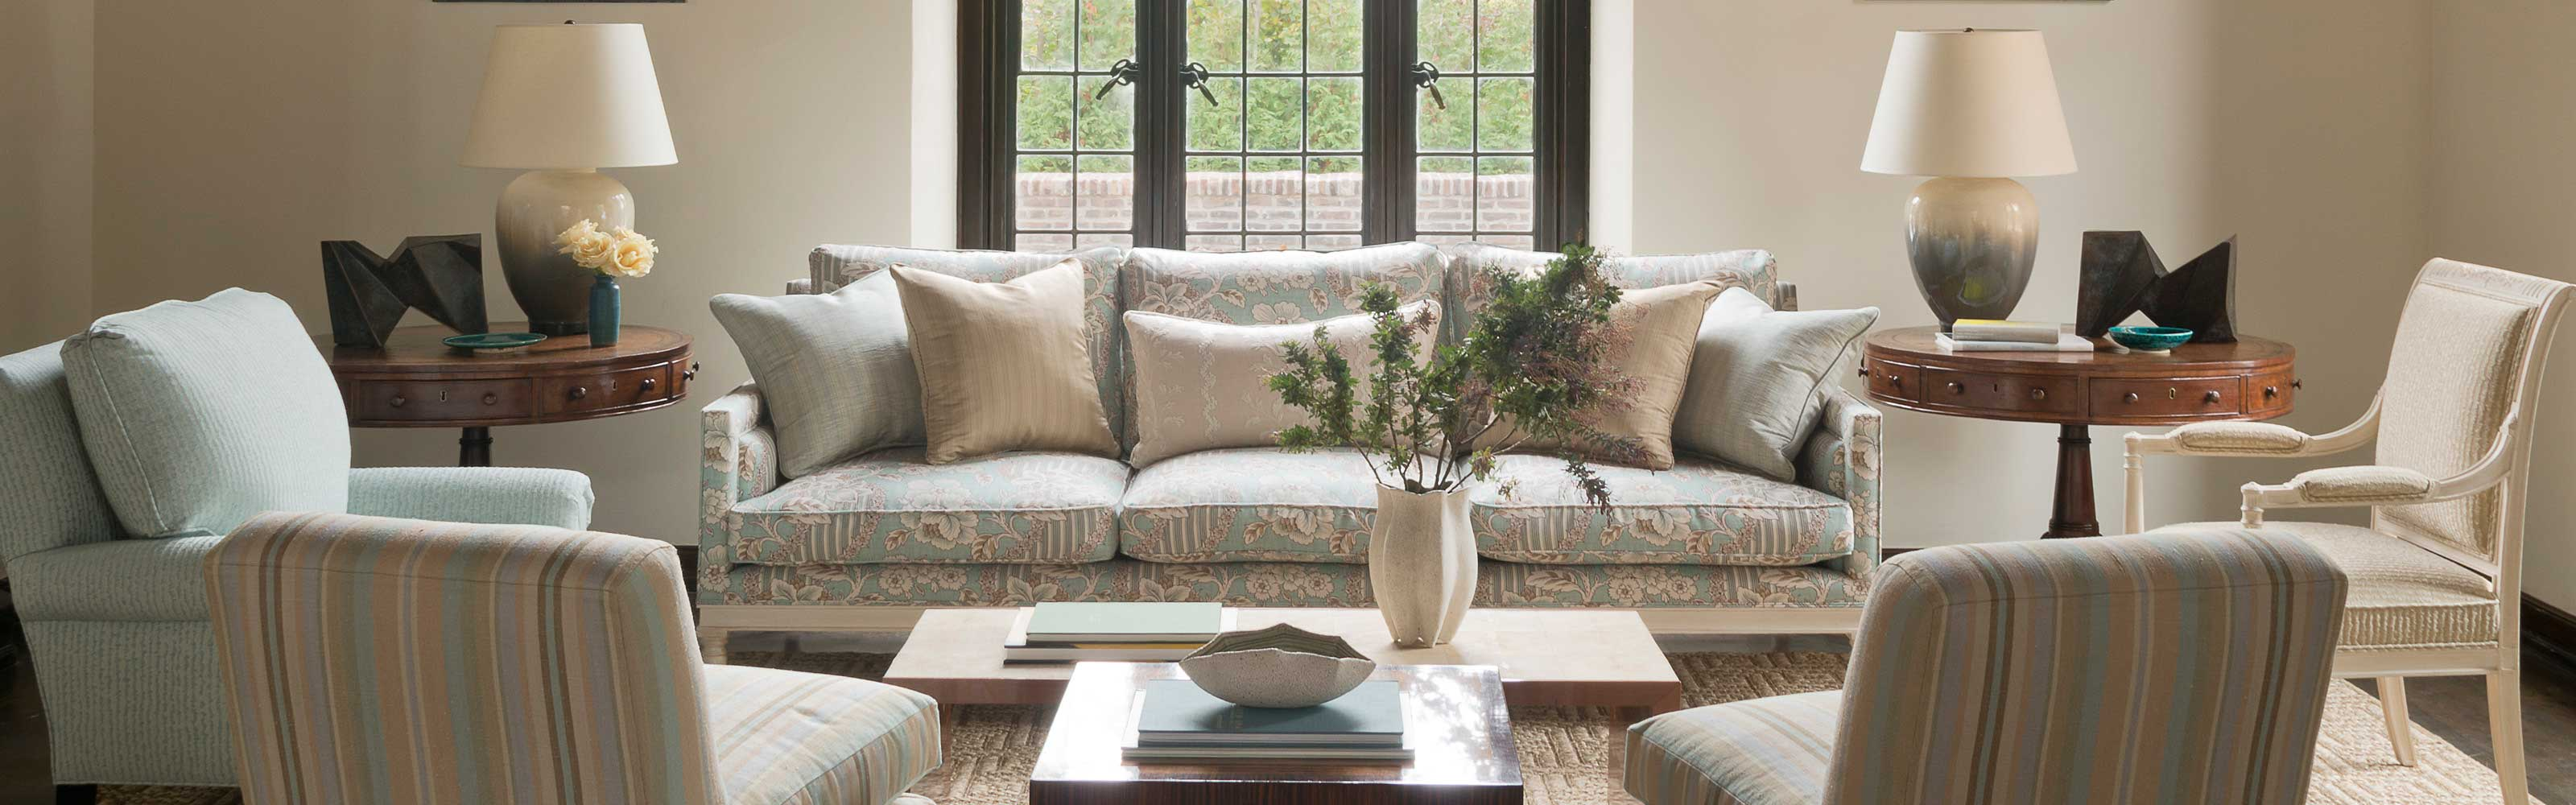 Creative Fils Upholstery Fabric Fils Le Lac Brunschwig Brunschwig Fils Brunschwig Fils Pacific Design Center Brunschwig houzz 01 Brunschwig And Fils